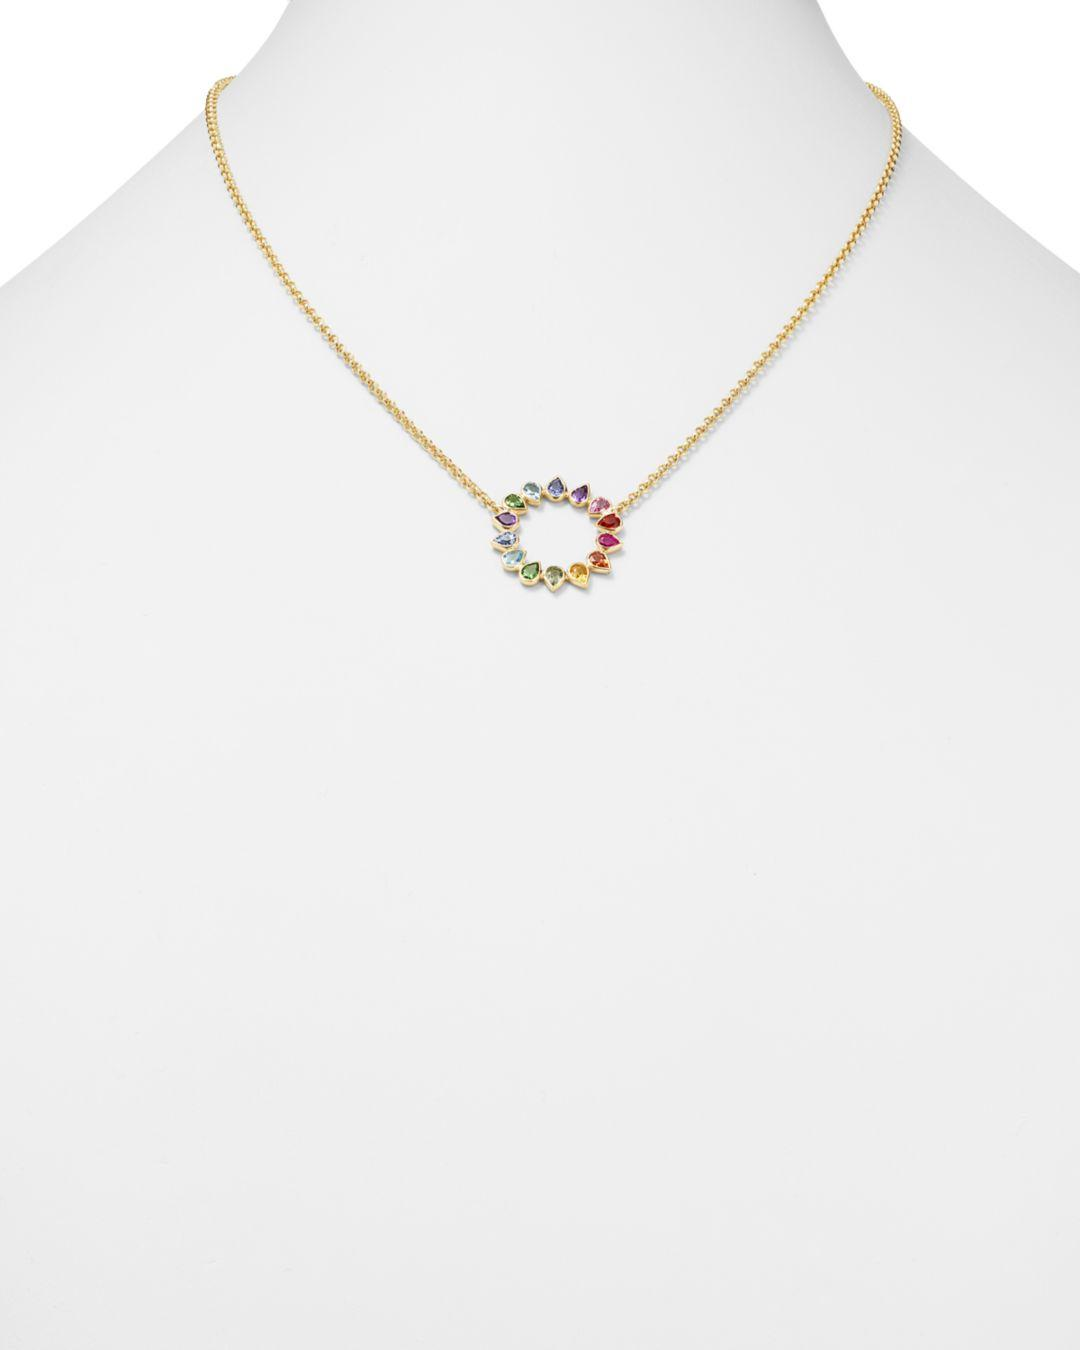 She Bee 14k Yellow Gold Multicolor Sapphire & Mixed Gemstone Circle Pendant Necklace in Metallic